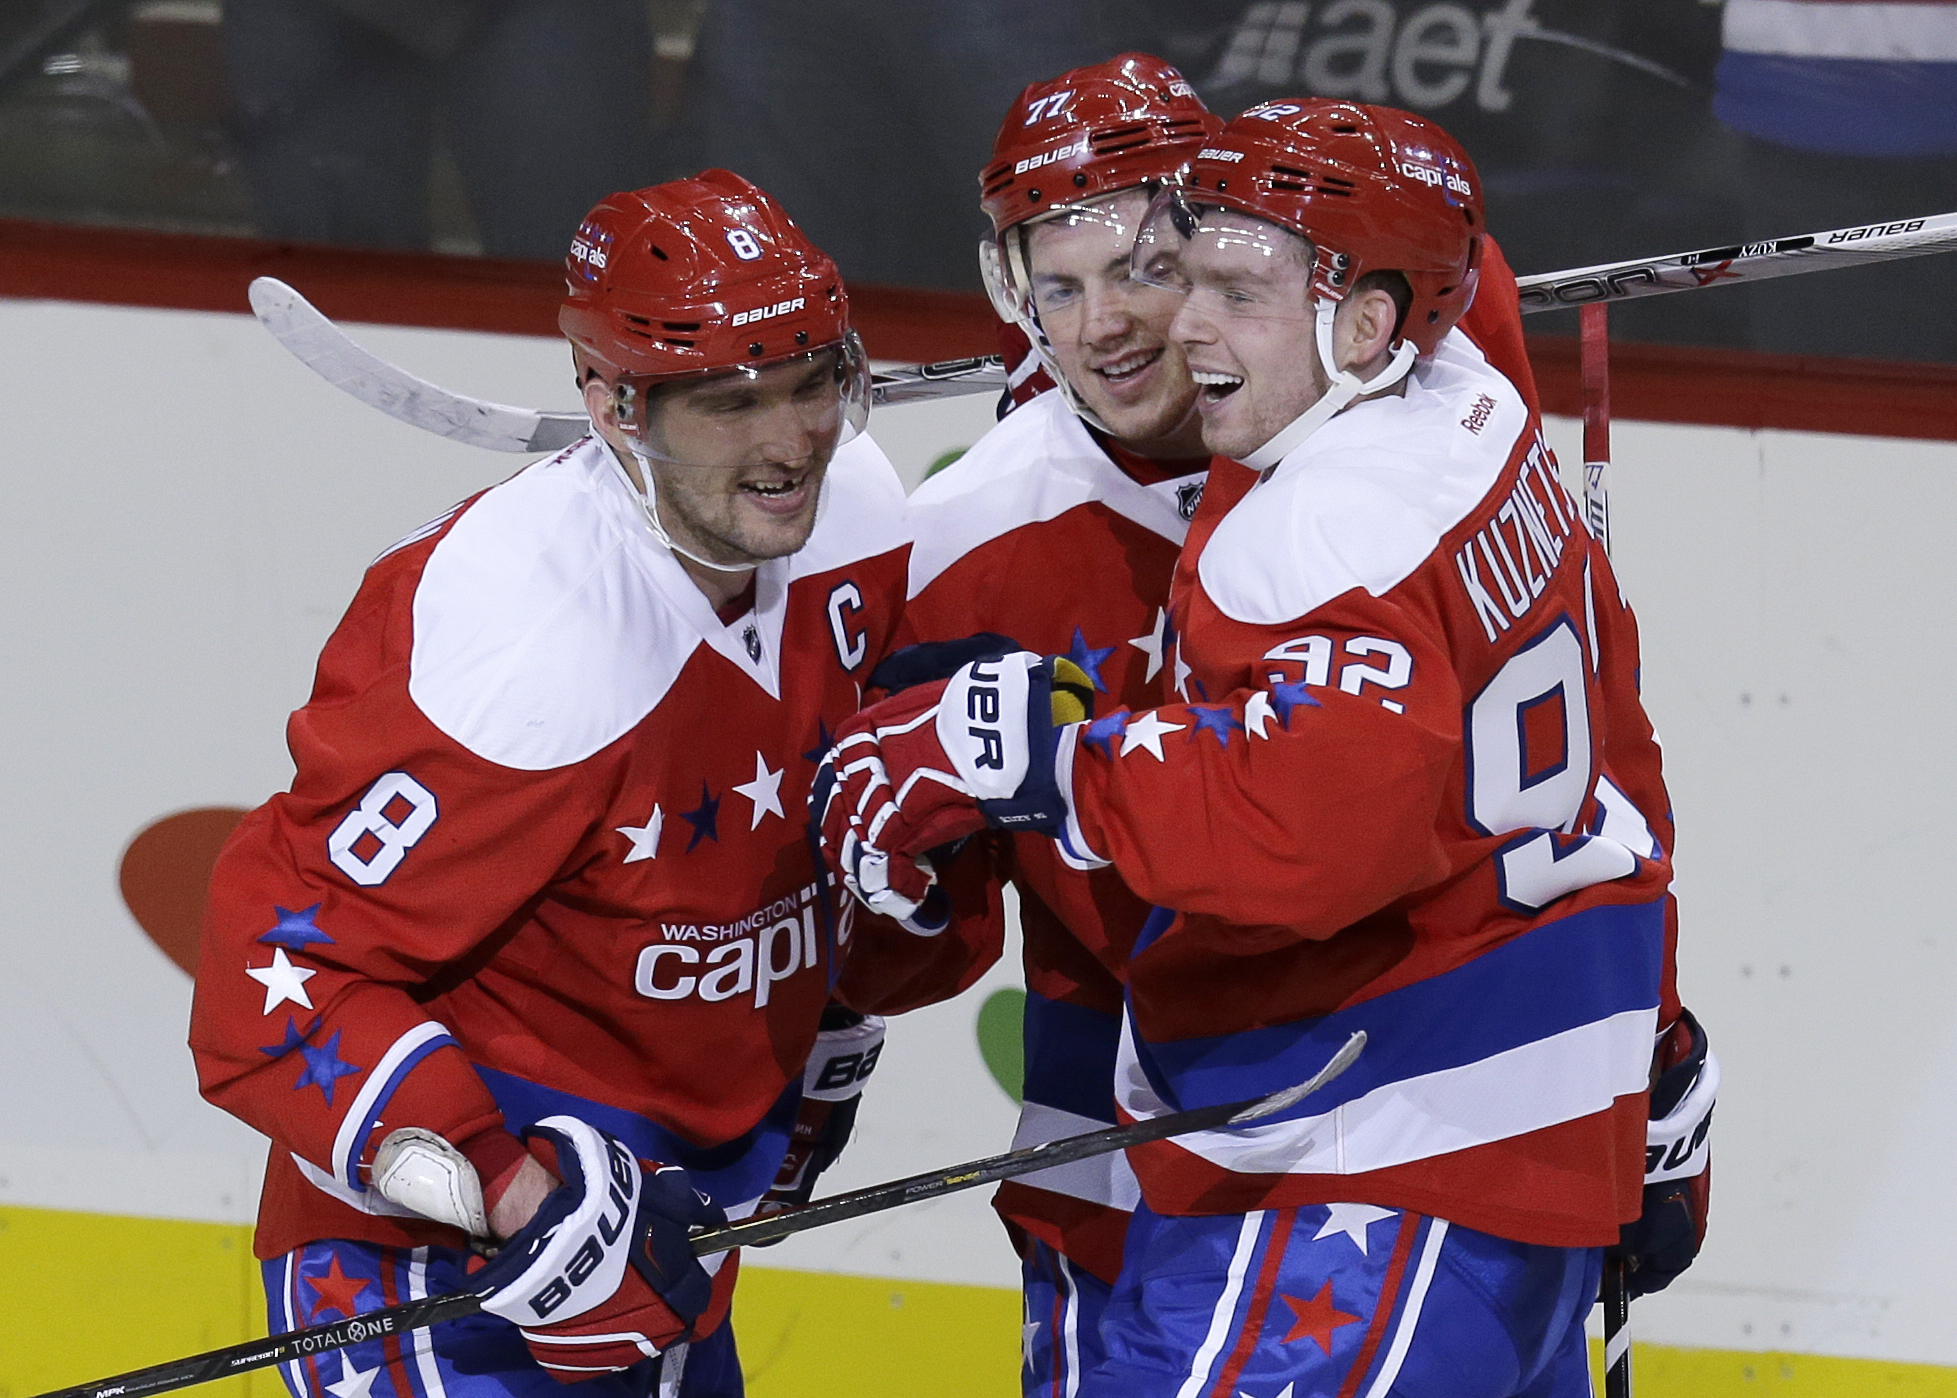 Washington Capitals left wing Alex Ovechkin (8) celebrates scoring an empty net goal with teammates T.J. Oshie (77), and Evgeny Kuznetsov (92) during the third period of an NHL hockey game against Buffalo Sabres, Wednesday, Dec. 30, 2015, in Washington. O